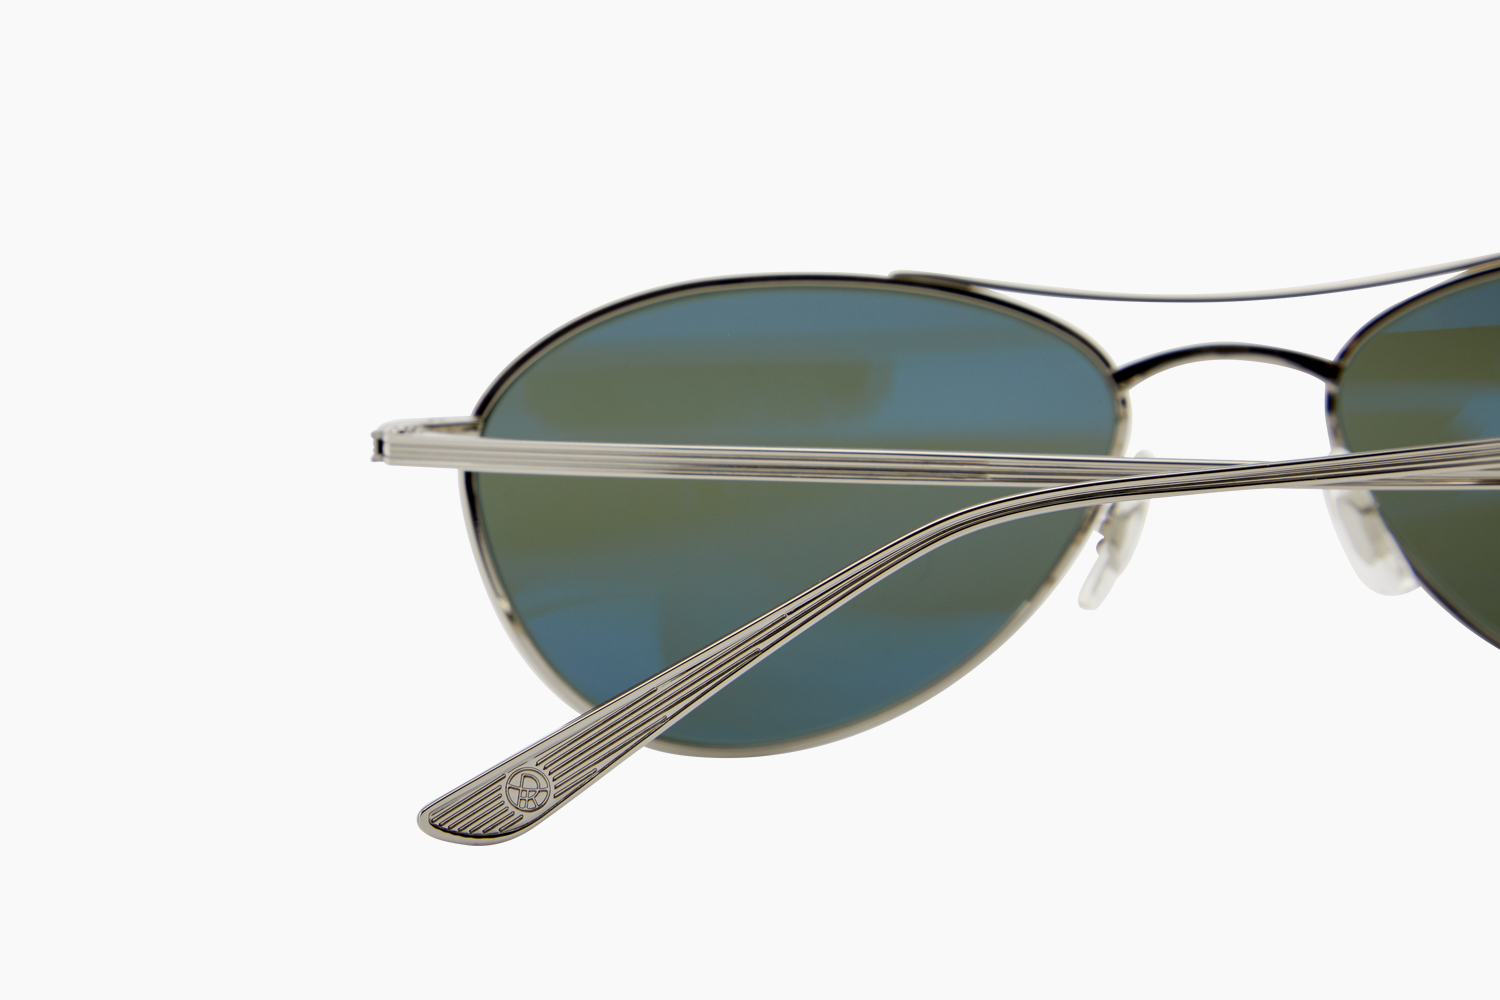 OLIVER PEOPLES THE ROW|AERO LA - 5036P1|OLIVER PEOPLES